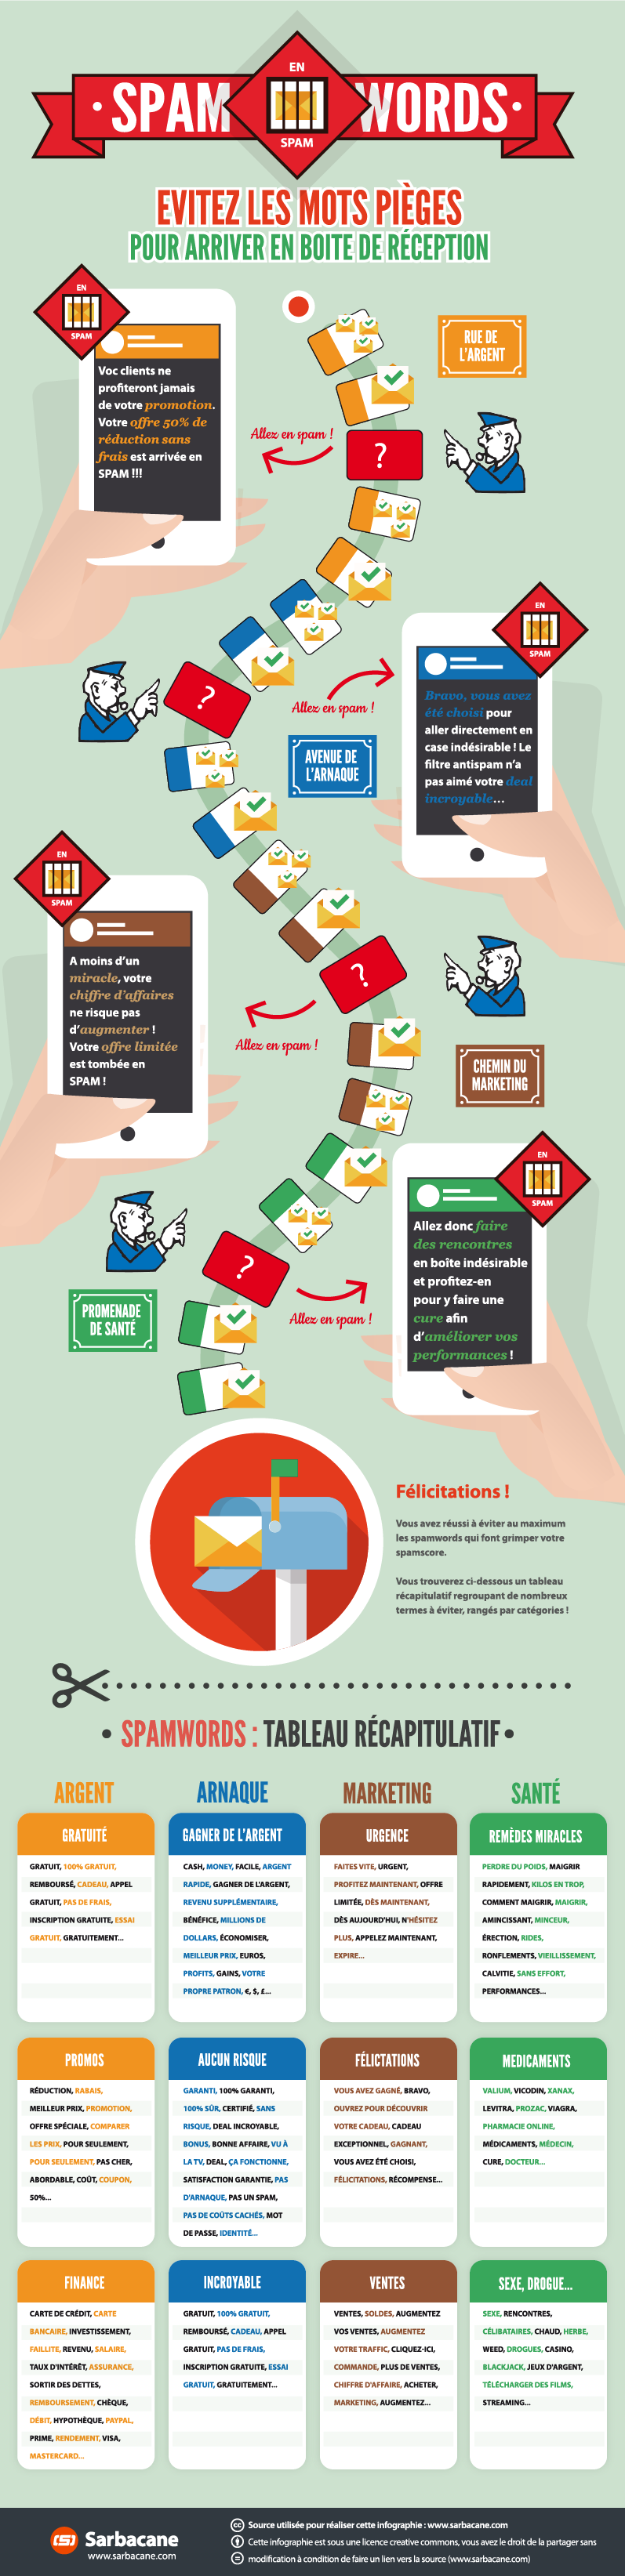 Infographie spam words sarbacane